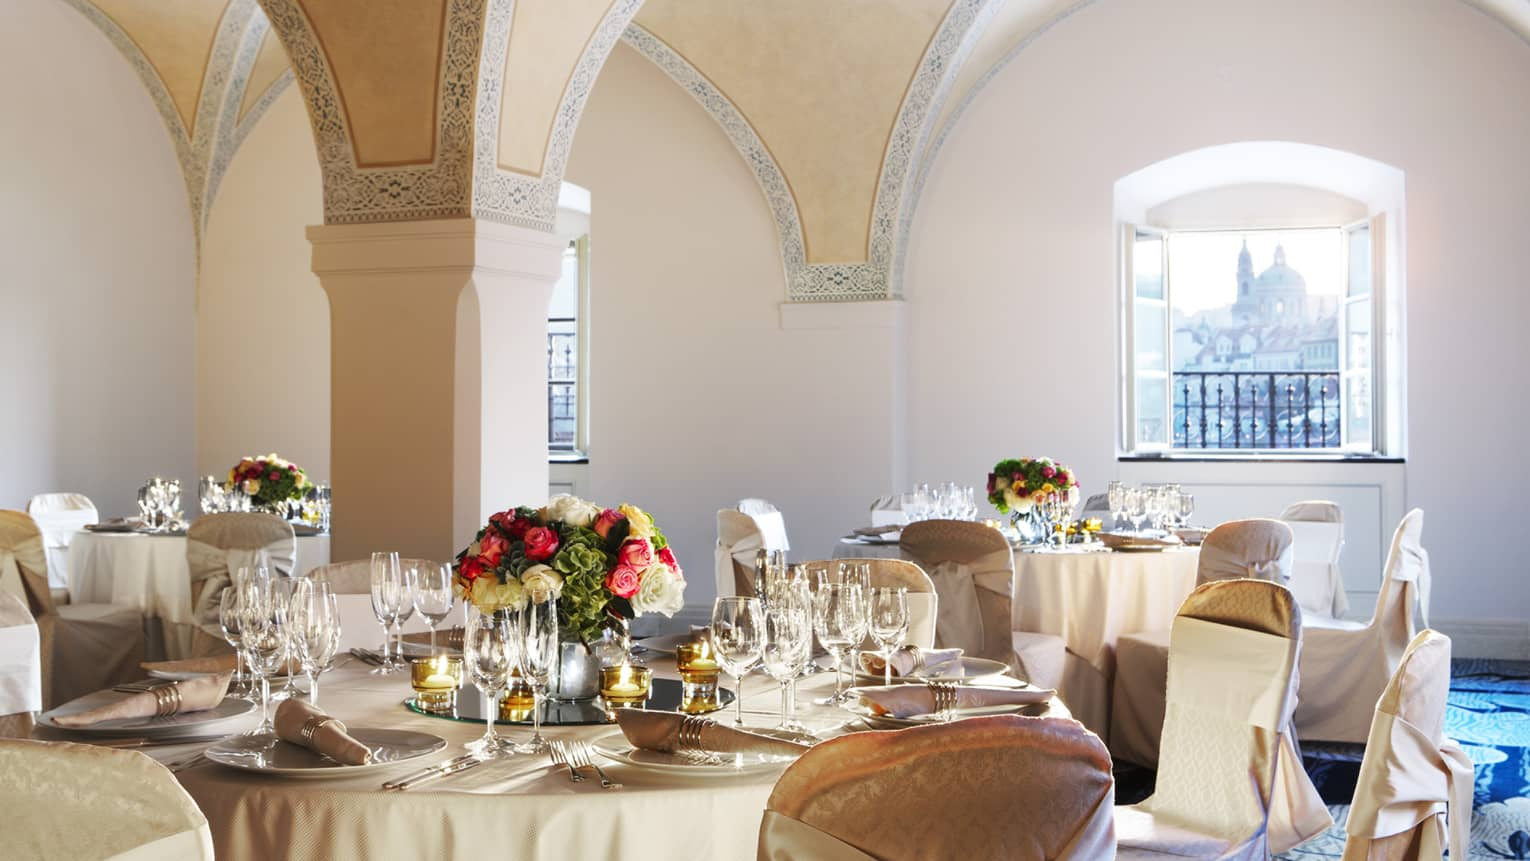 Vltava Meeting Room banquet tables under arched ceiling, sunny windows